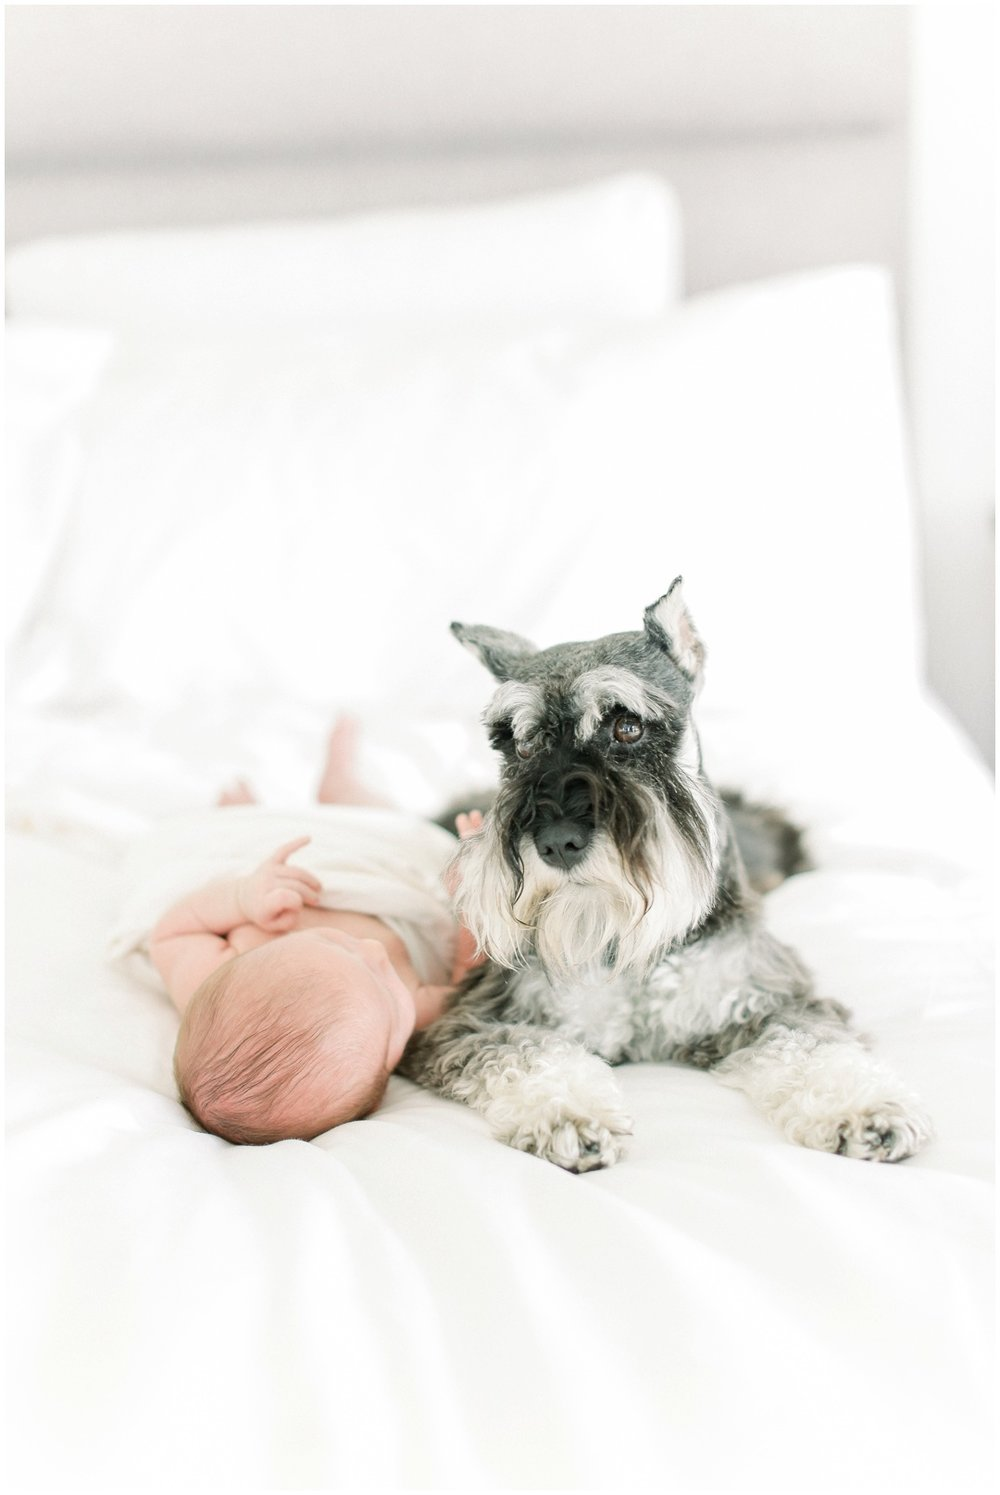 Newport_Beach_Newborn_Photographer_Newport_Beach_Maternity_Photographer_Orange_County_Family_Photographer_Cori_Kleckner_Photography_Huntington_Beach_Photographer_Maile_Trumbo_Mark_Trumbo_Photos_2689.jpg